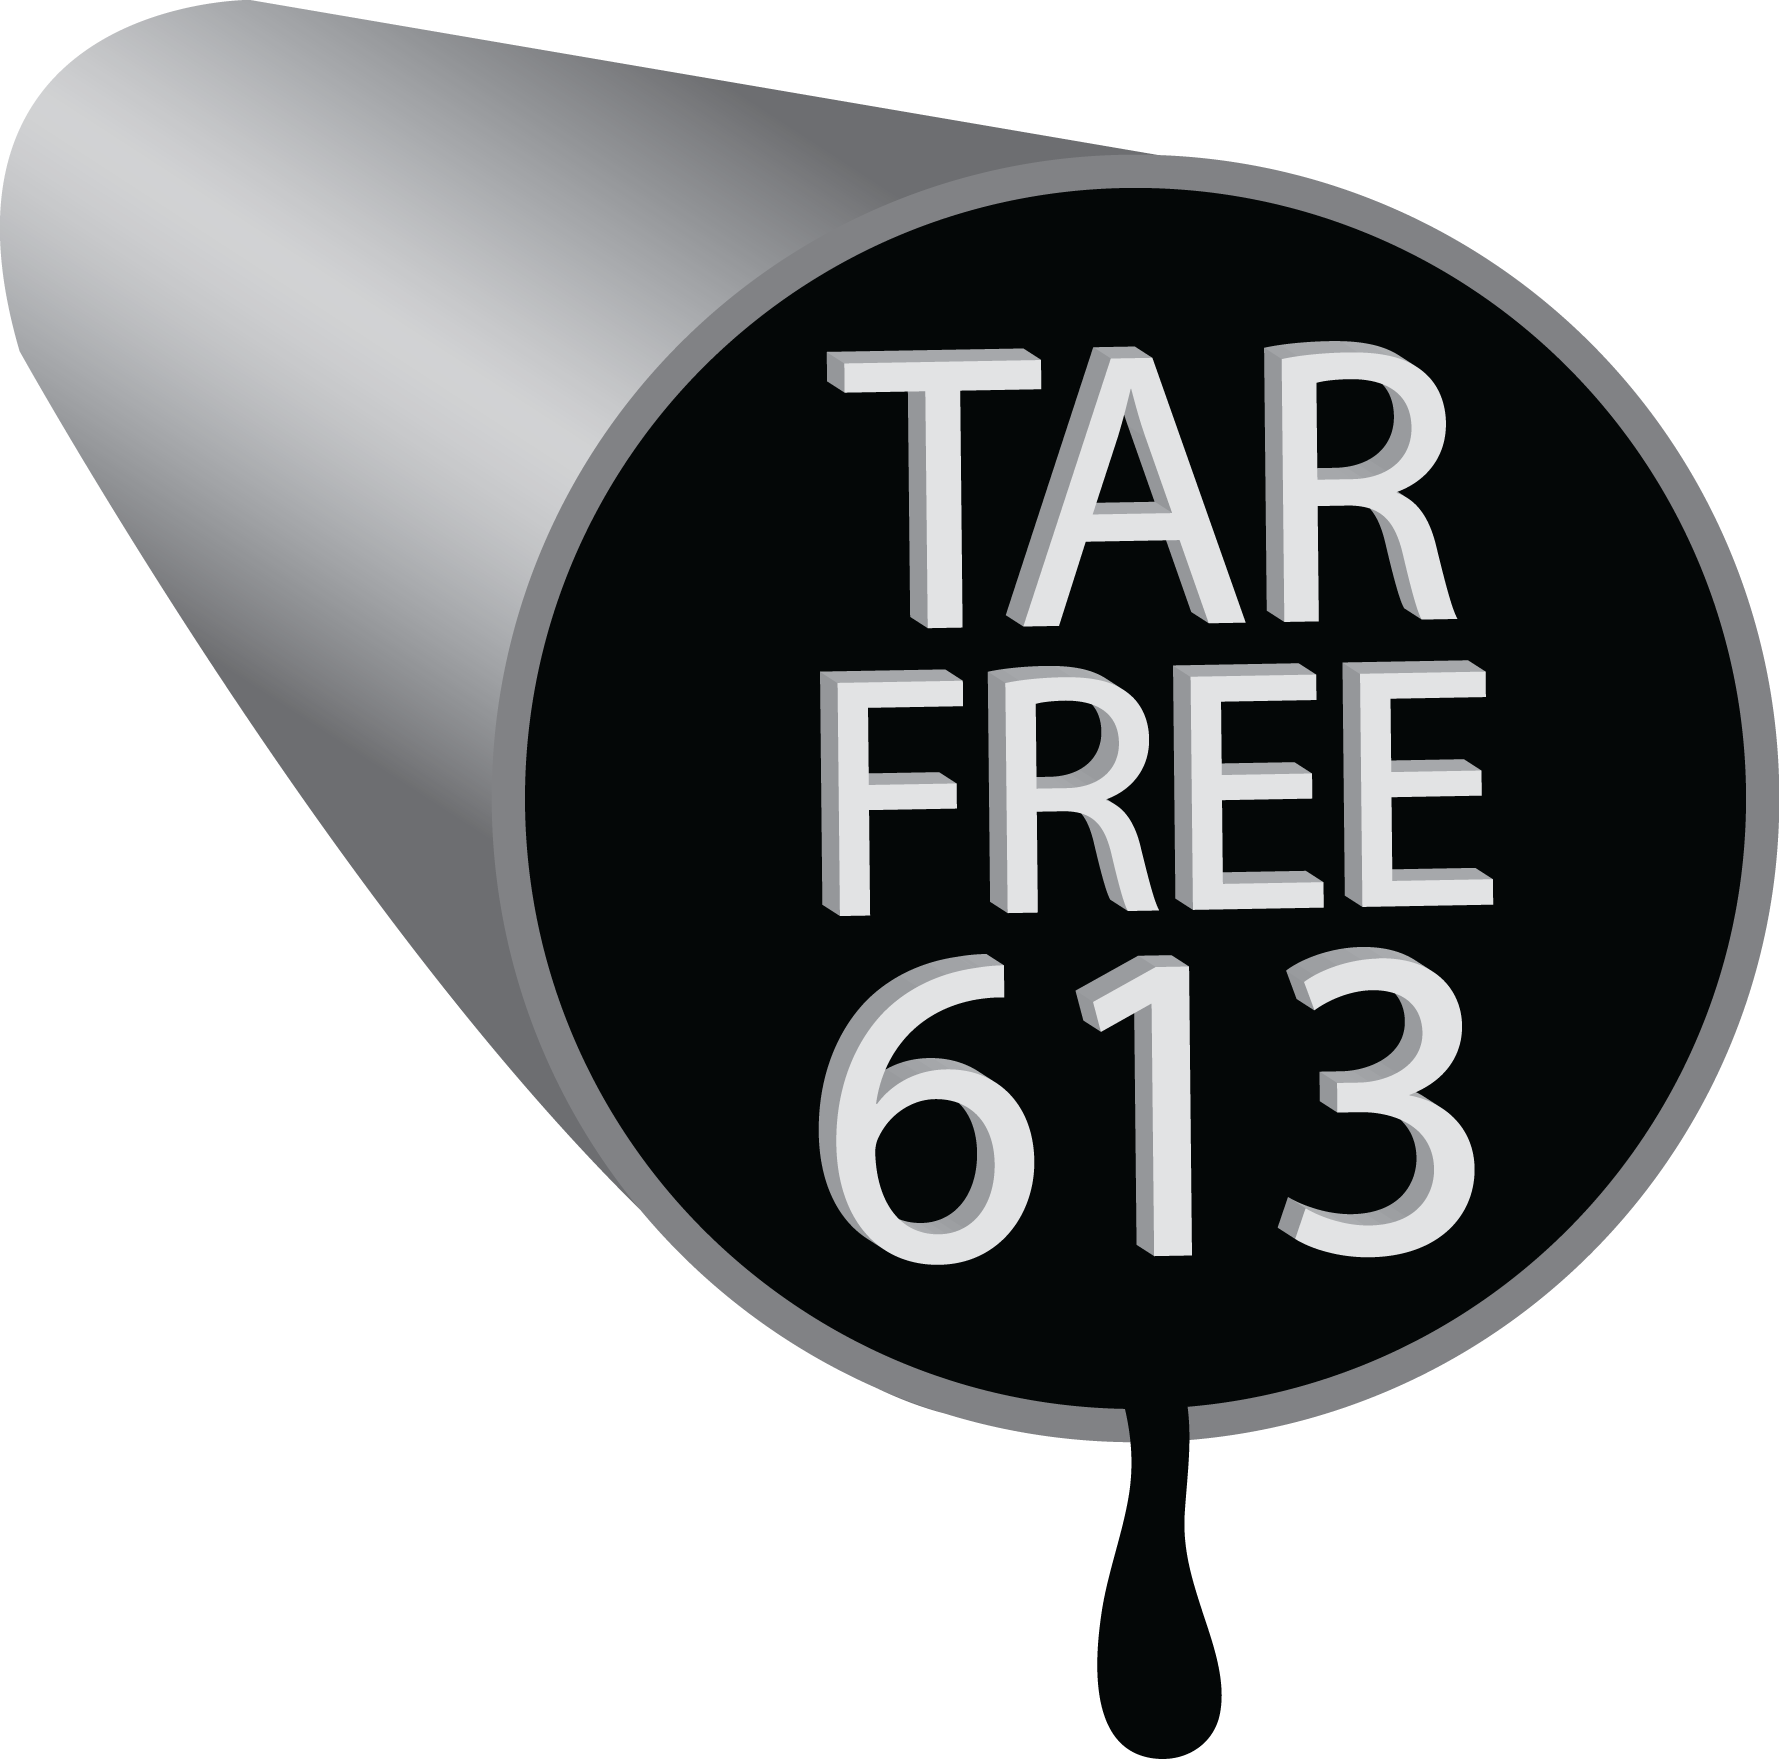 TarFree613LogoENGLISH.png